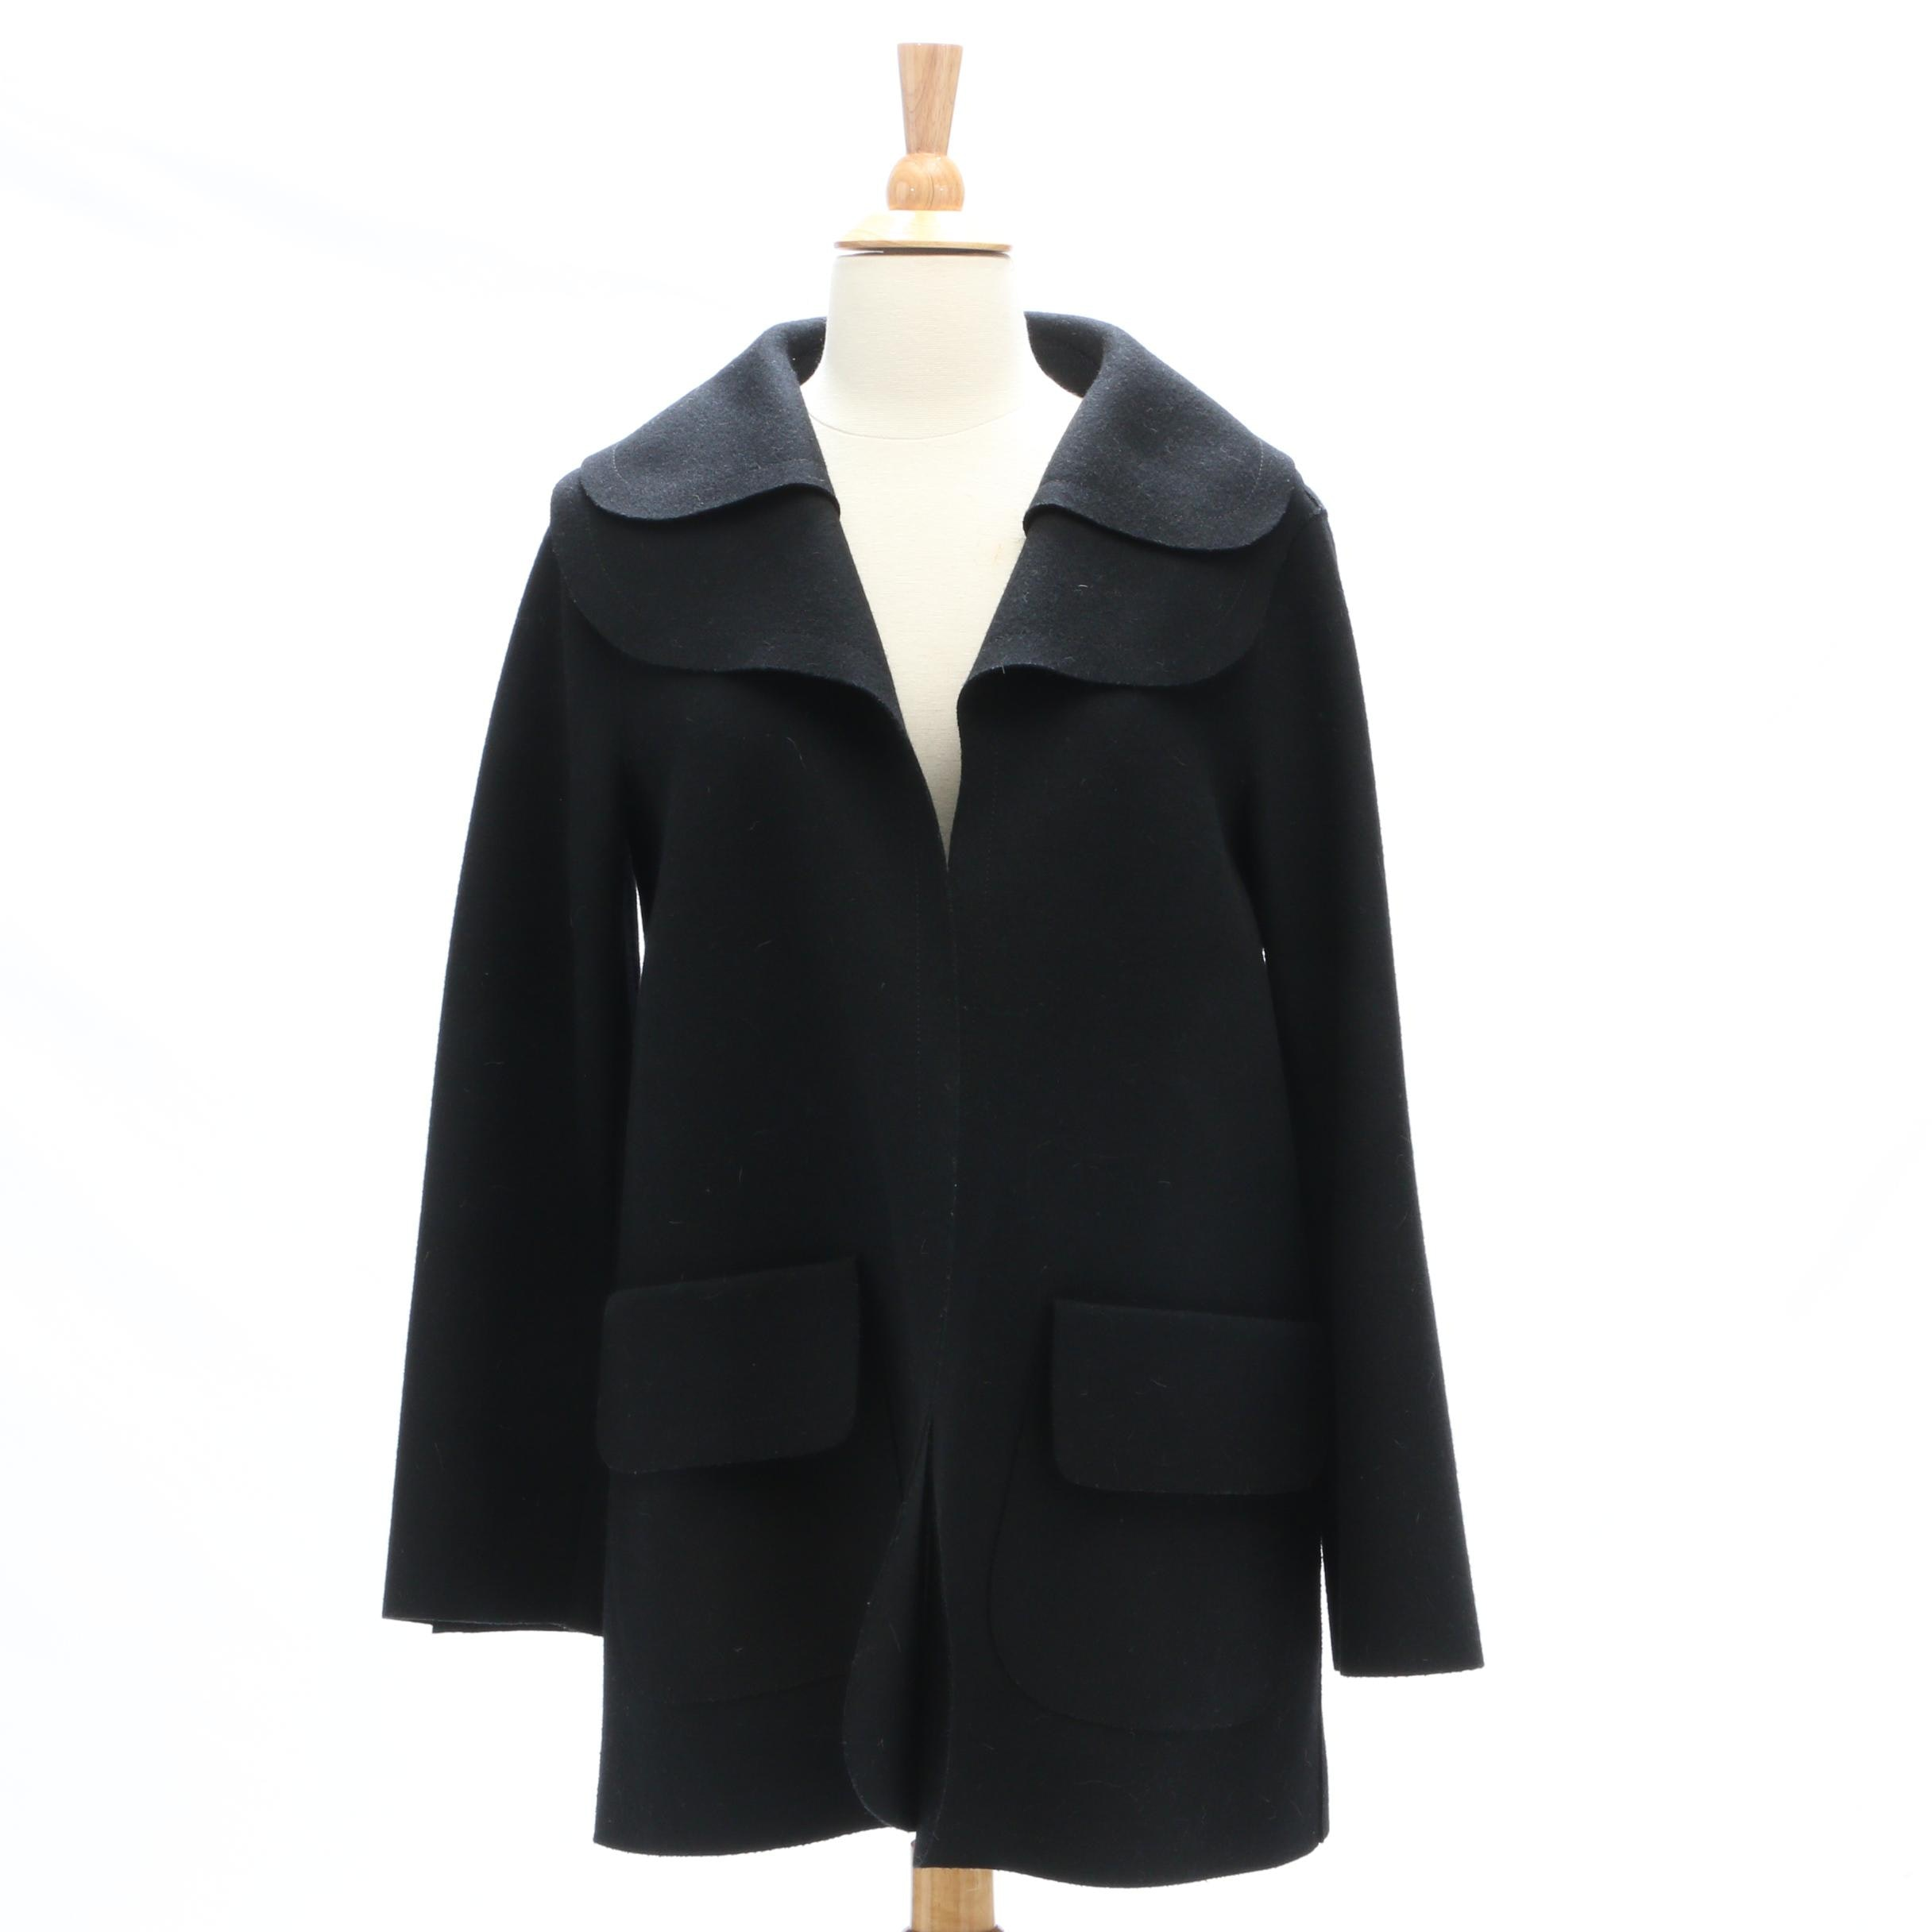 Carolina Herrera Black Wool Blend Swing Jacket